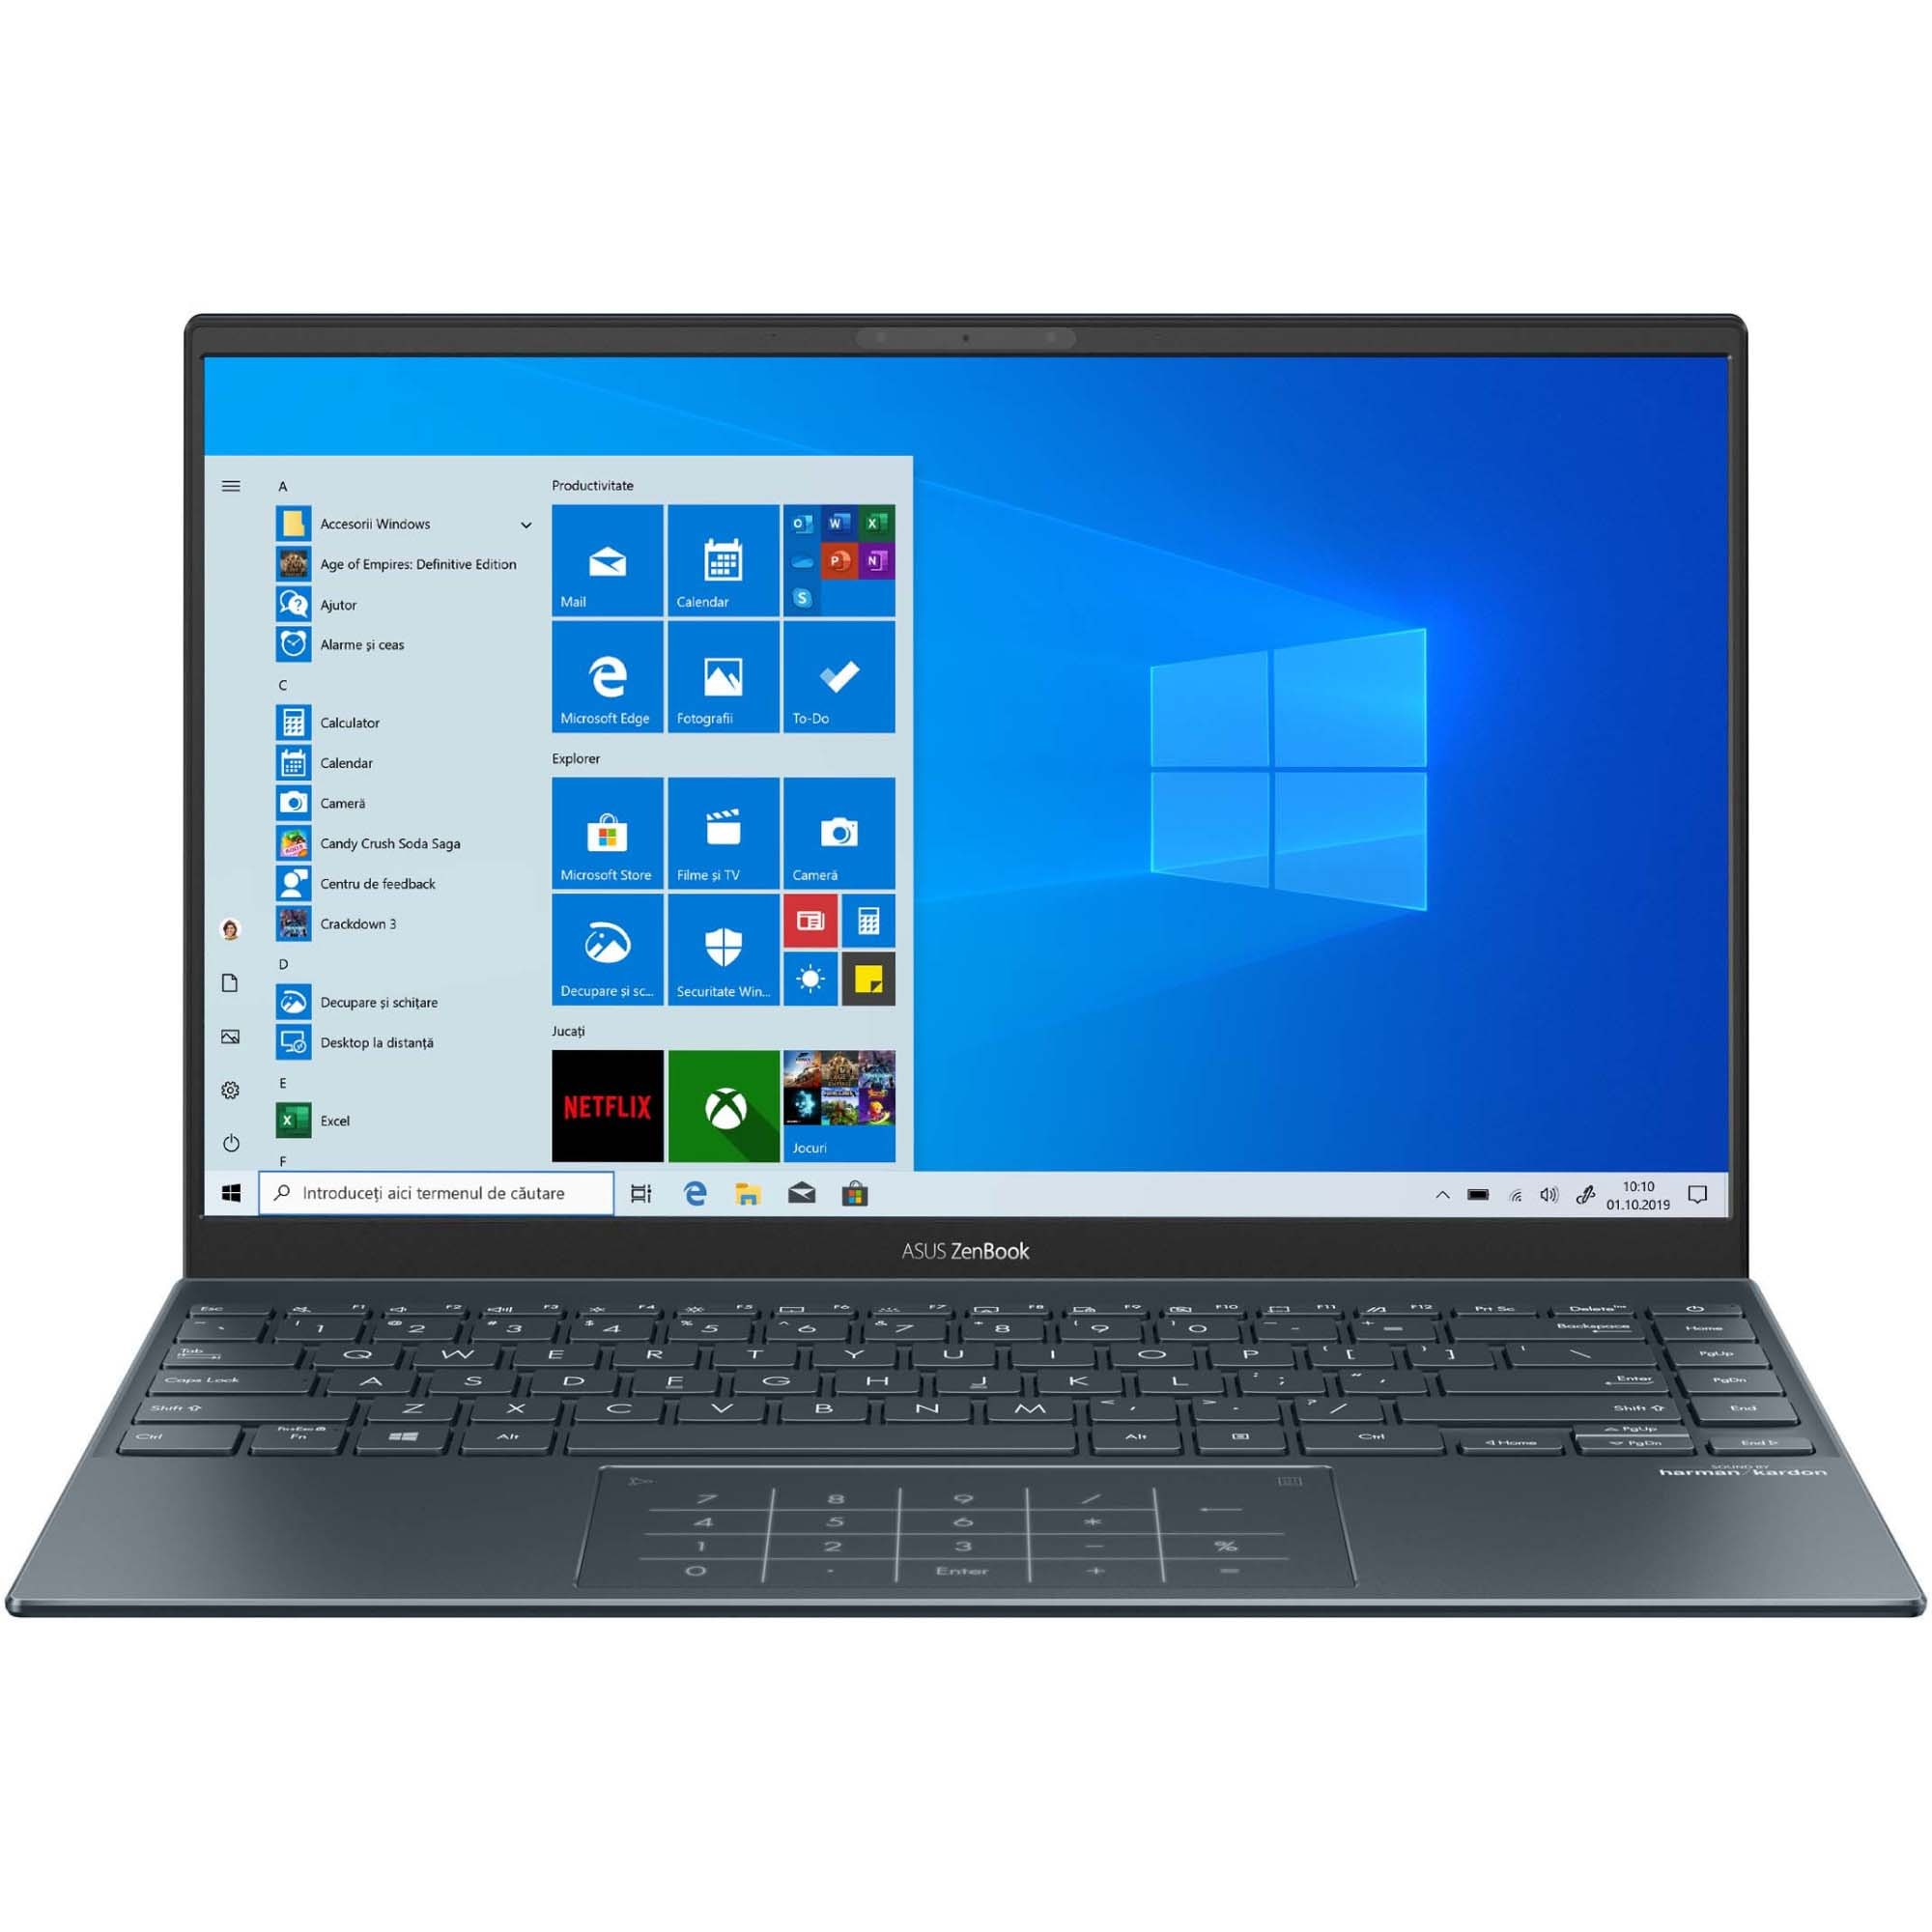 "Fotografie Laptop ultraportabil ASUS ZenBook 14 UM425IA cu procesor AMD Ryzen™ 7 4700U pana la 4.10 GHz, 14"", Full HD, 16GB, 1TB SSD, AMD Radeon™ Graphics, Windows 10 Pro, Pine Grey"